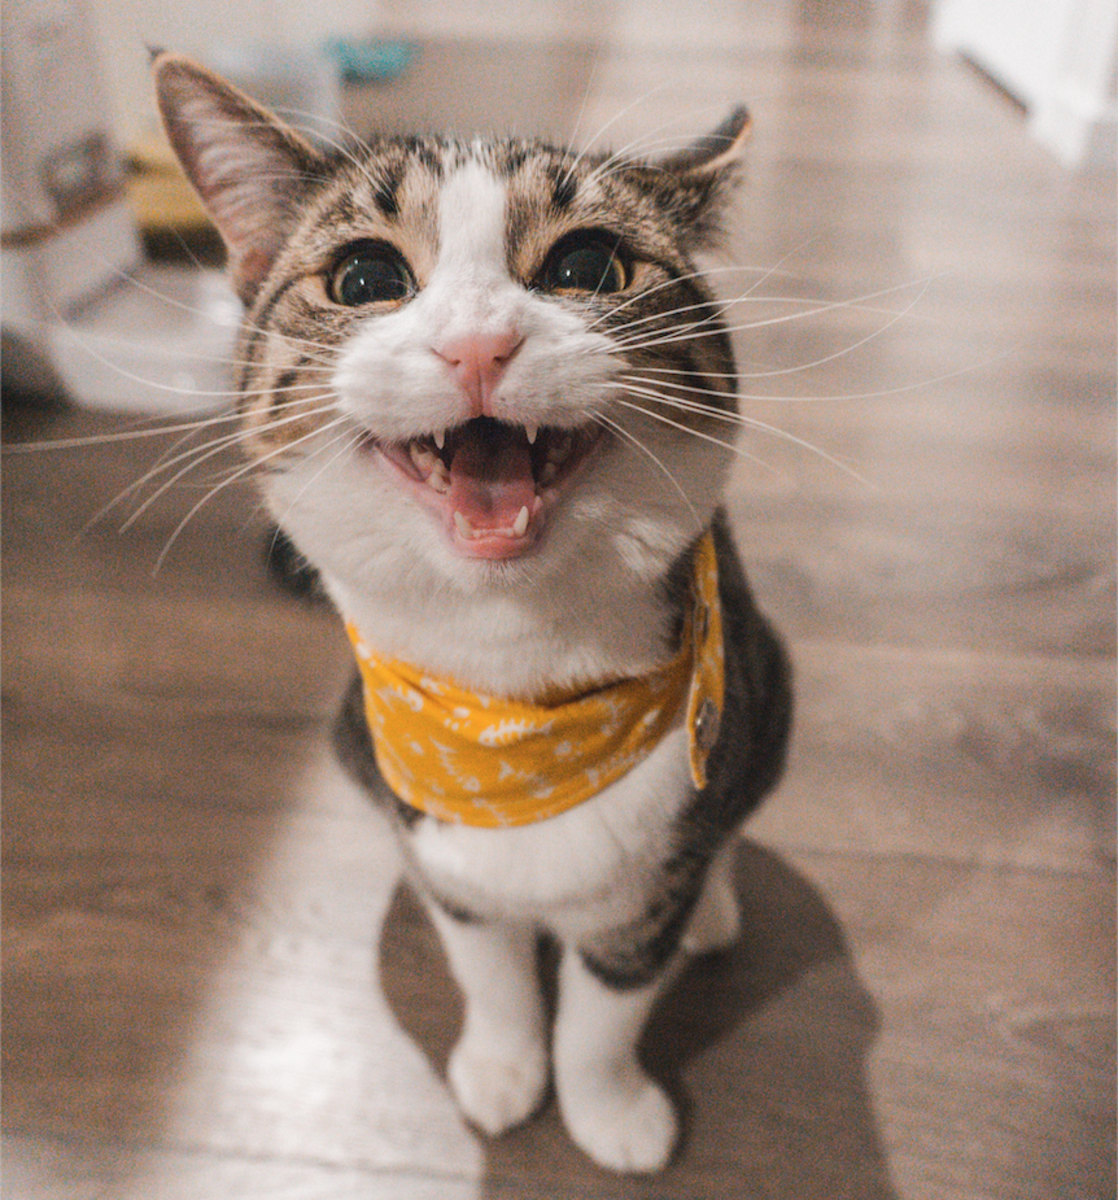 Why Do Cats Meow so Much?